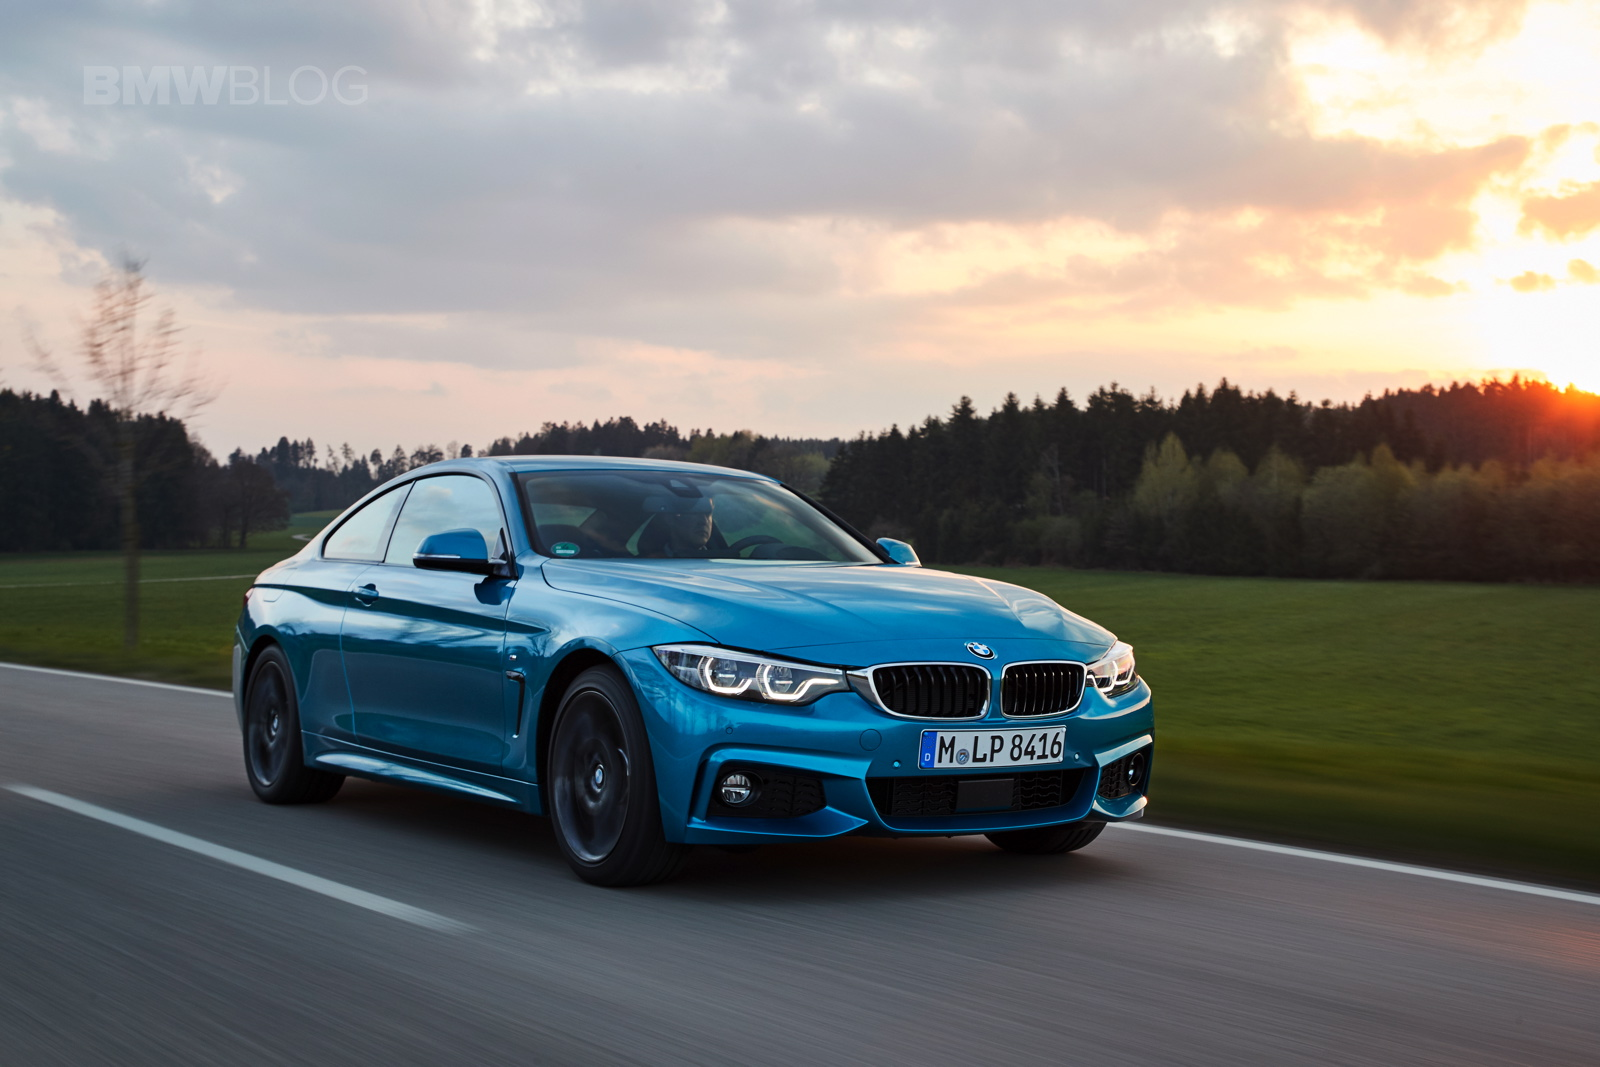 2018 BMW 4 Series Coupe test drive 25